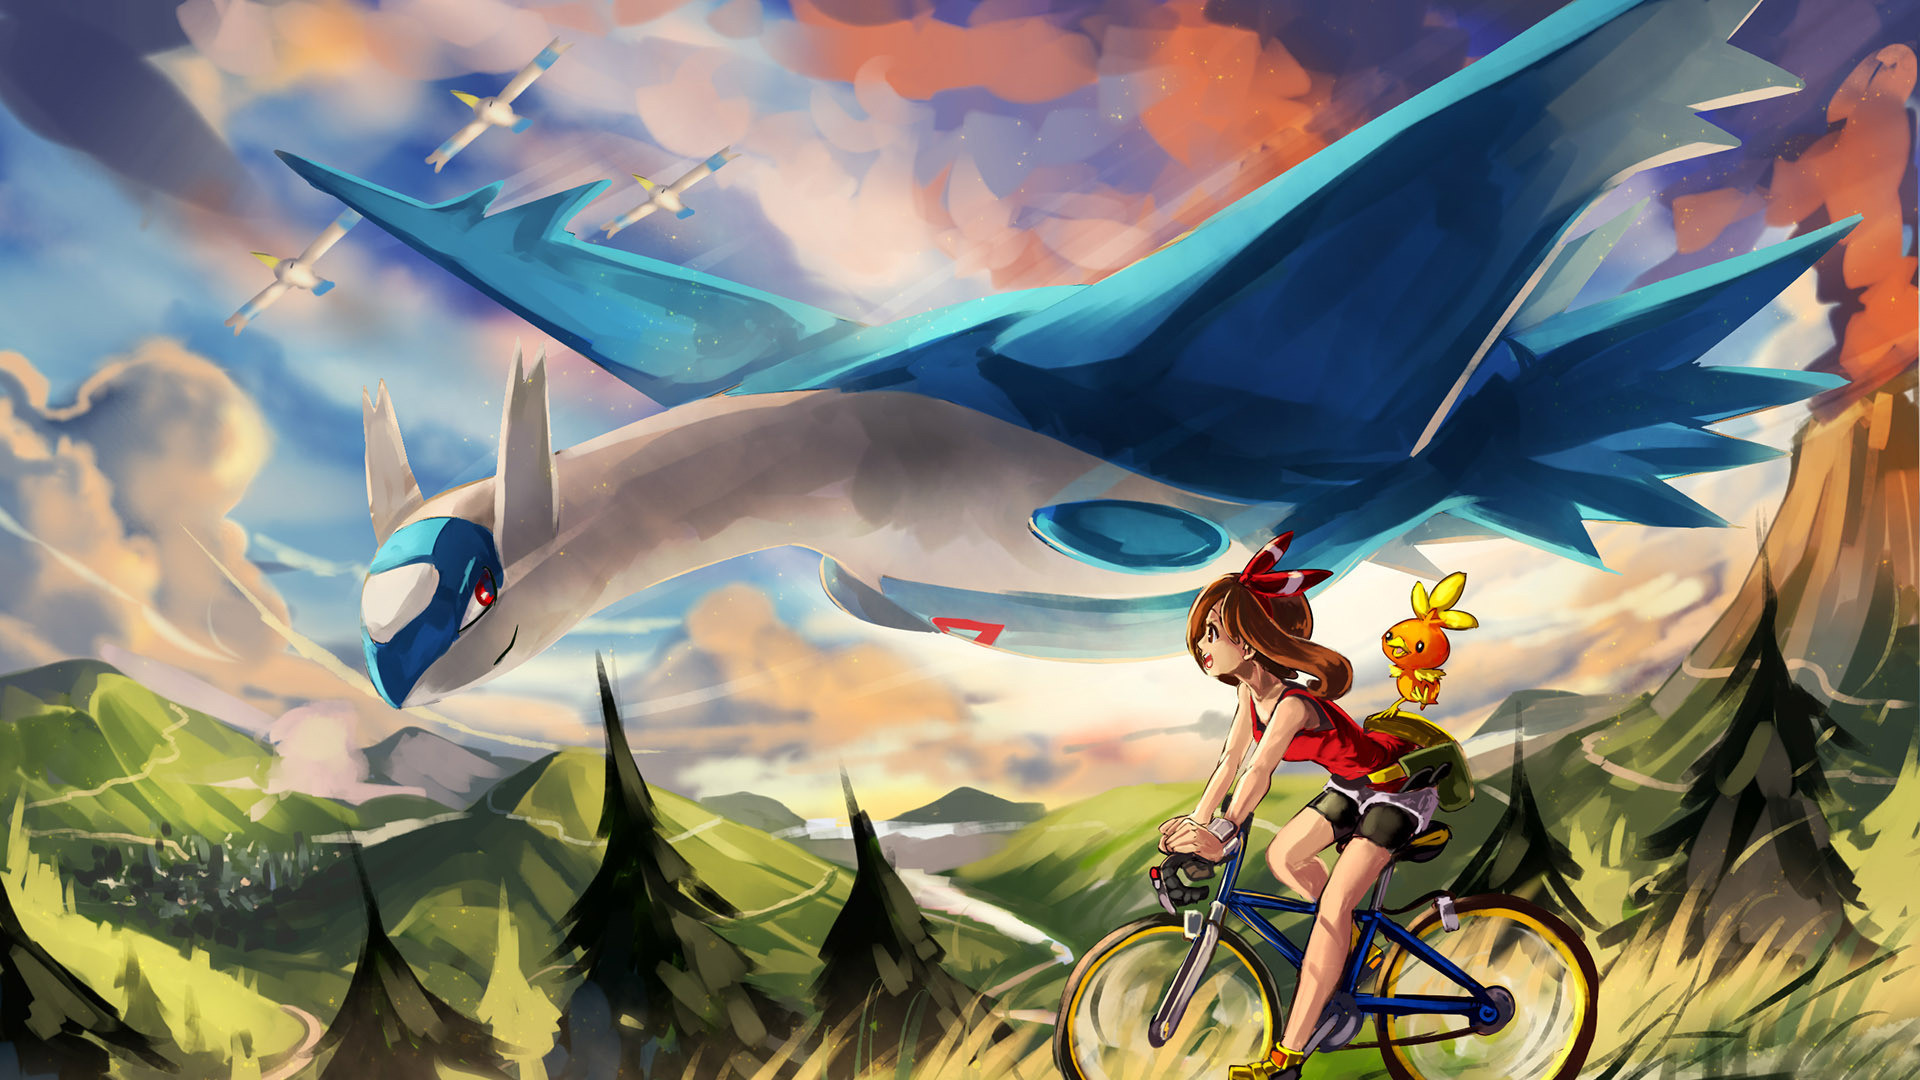 Res: 1920x1080, epic pokemon widescreen wallpaper by hd wallpapers daily. serena on the bike